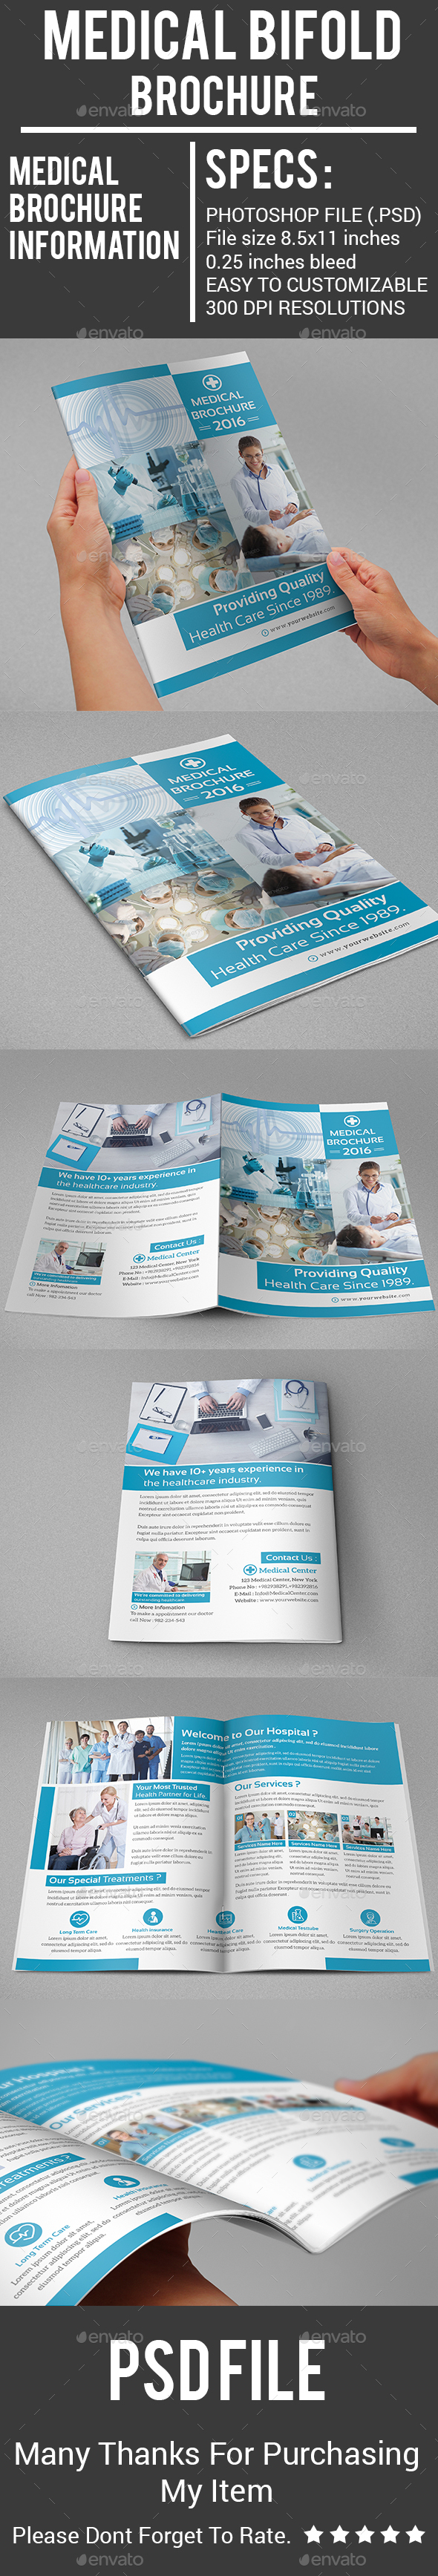 Medical Bifold Brochure - Corporate Brochures